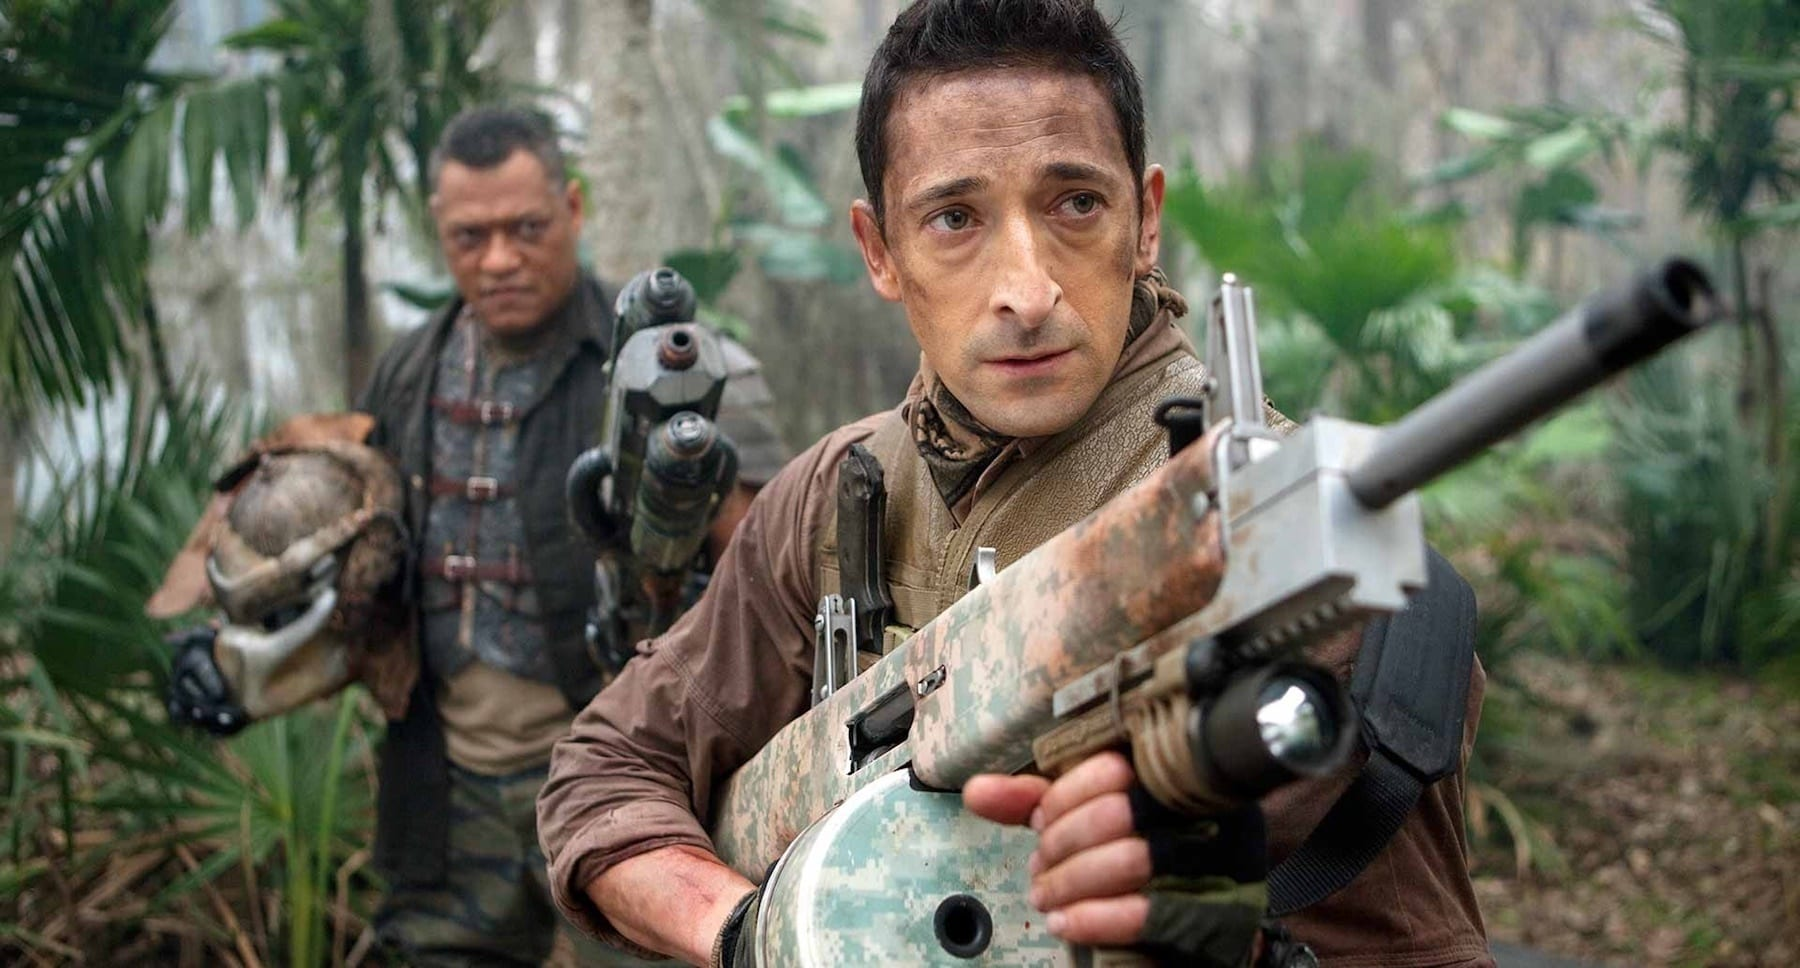 Adrien Brody (as Royce) and Laurence Fishburne (as Ronald Noland) holding a Predator's head.